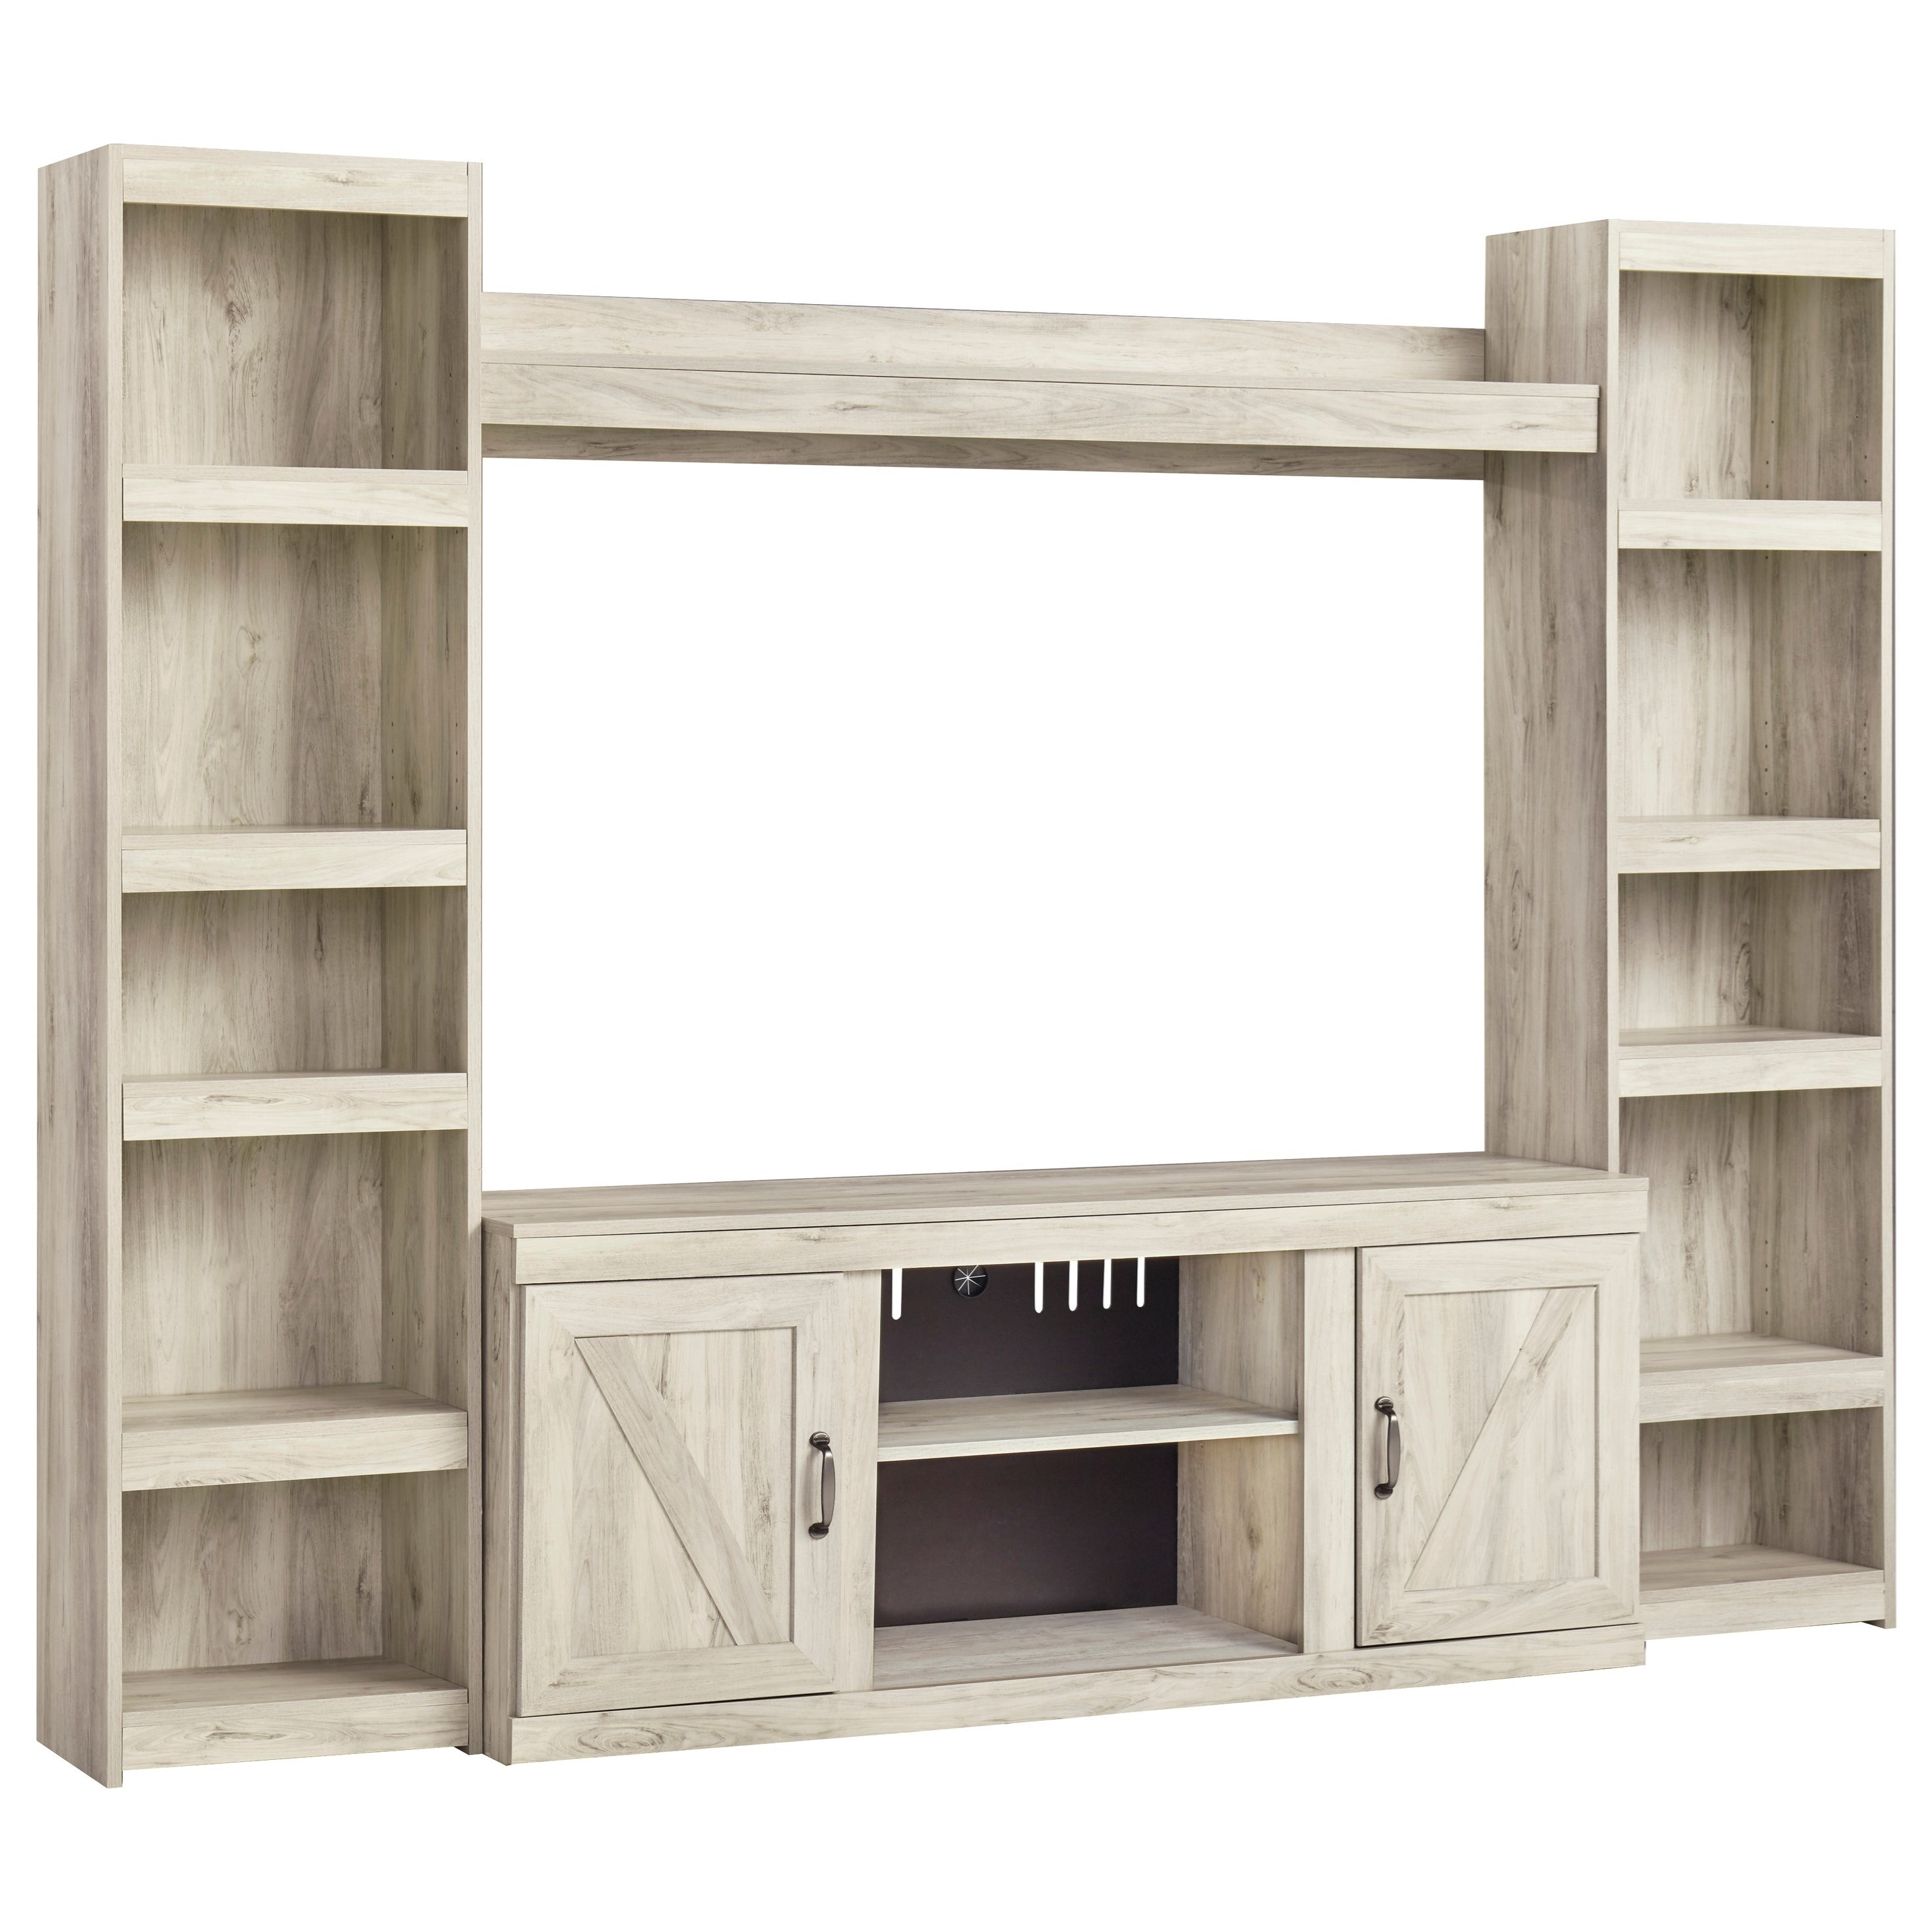 Bellaby TV Stand with 2 Piers and Bridge by Signature Design by Ashley at Darvin Furniture